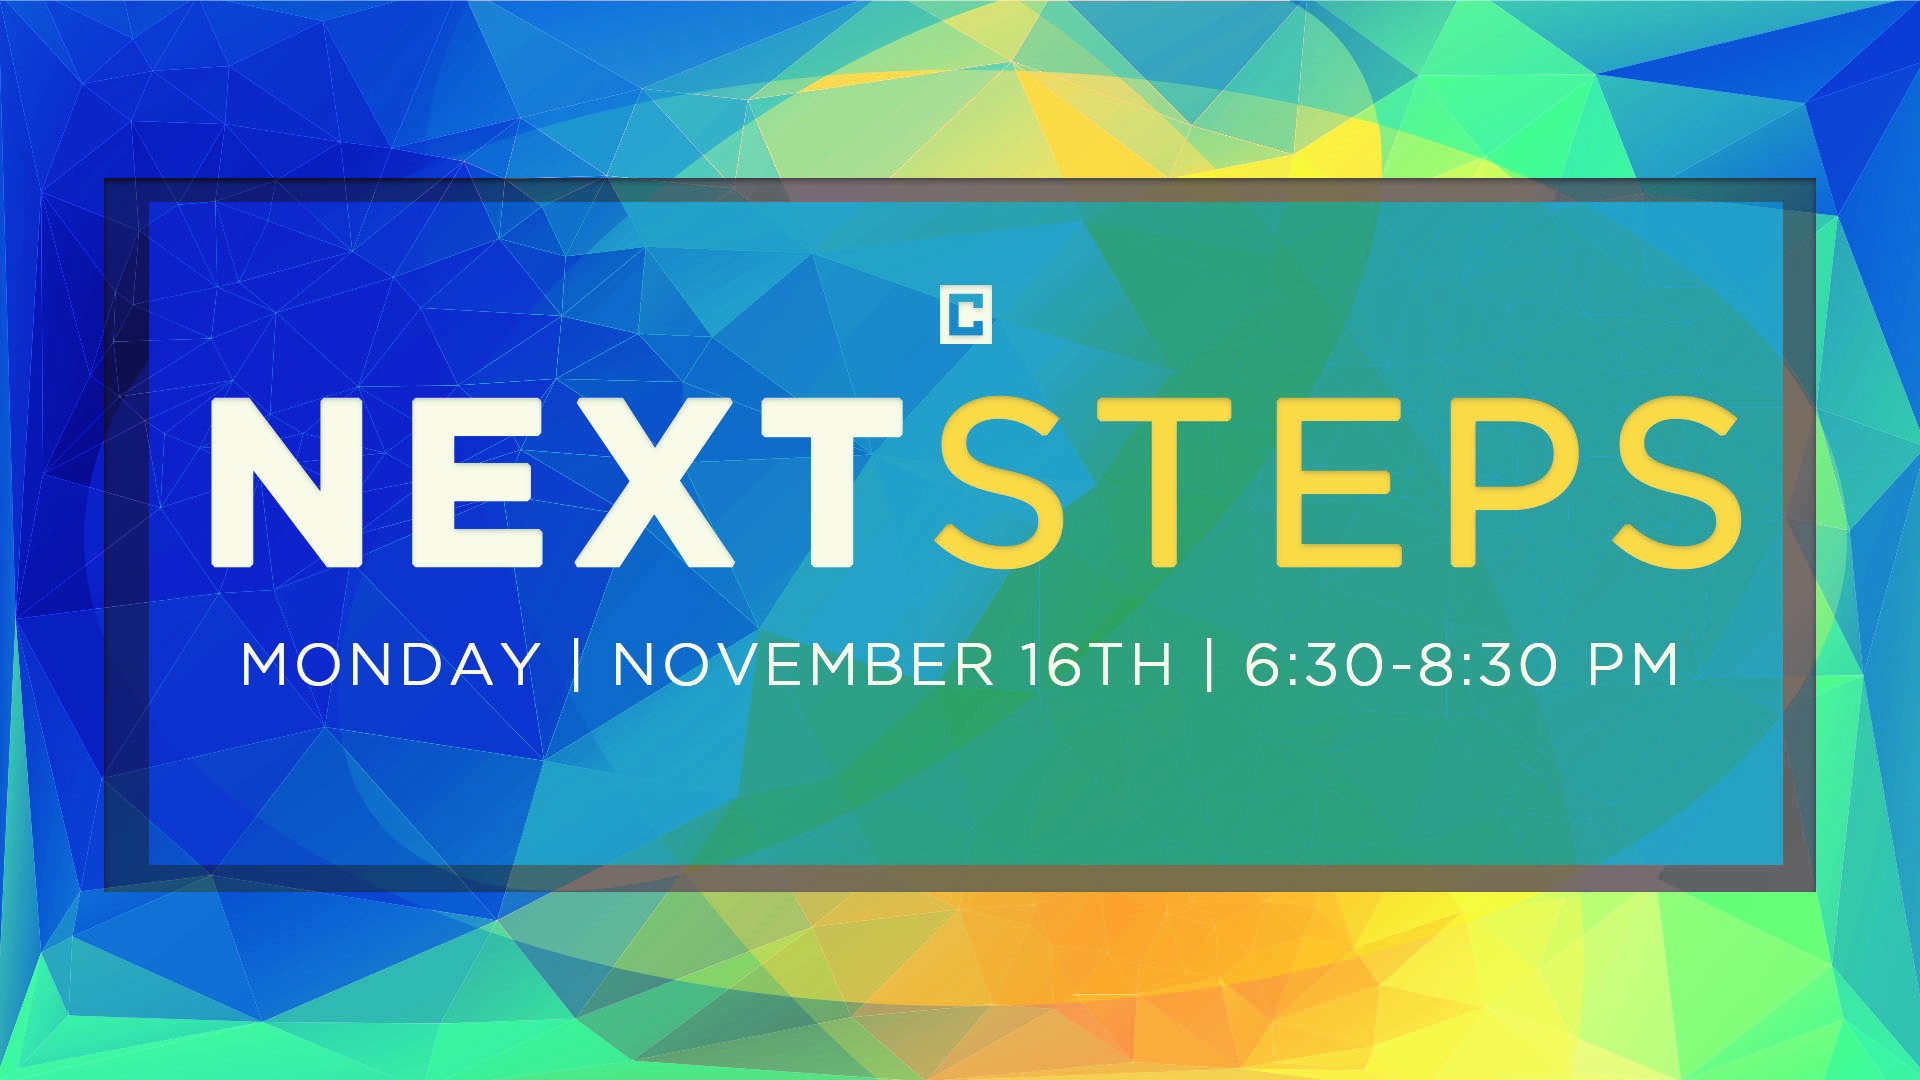 NEXT STEPS - November 16 - 6:30 - 8:30 PM  Next Steps is a process we've designed specifically to help you connect with Crossbridge. At Next Steps you'll have a chance to meet staff, learn about what kind of church we are and how to take your next step in getting connected at Crossbridge and growing as a follower of Jesus, Childcare is available (birth-5th grade) with a reservation. We'll serve the best meal you have ever had (Okay it may not be the best but it will be good!) Sign-up  HERE !